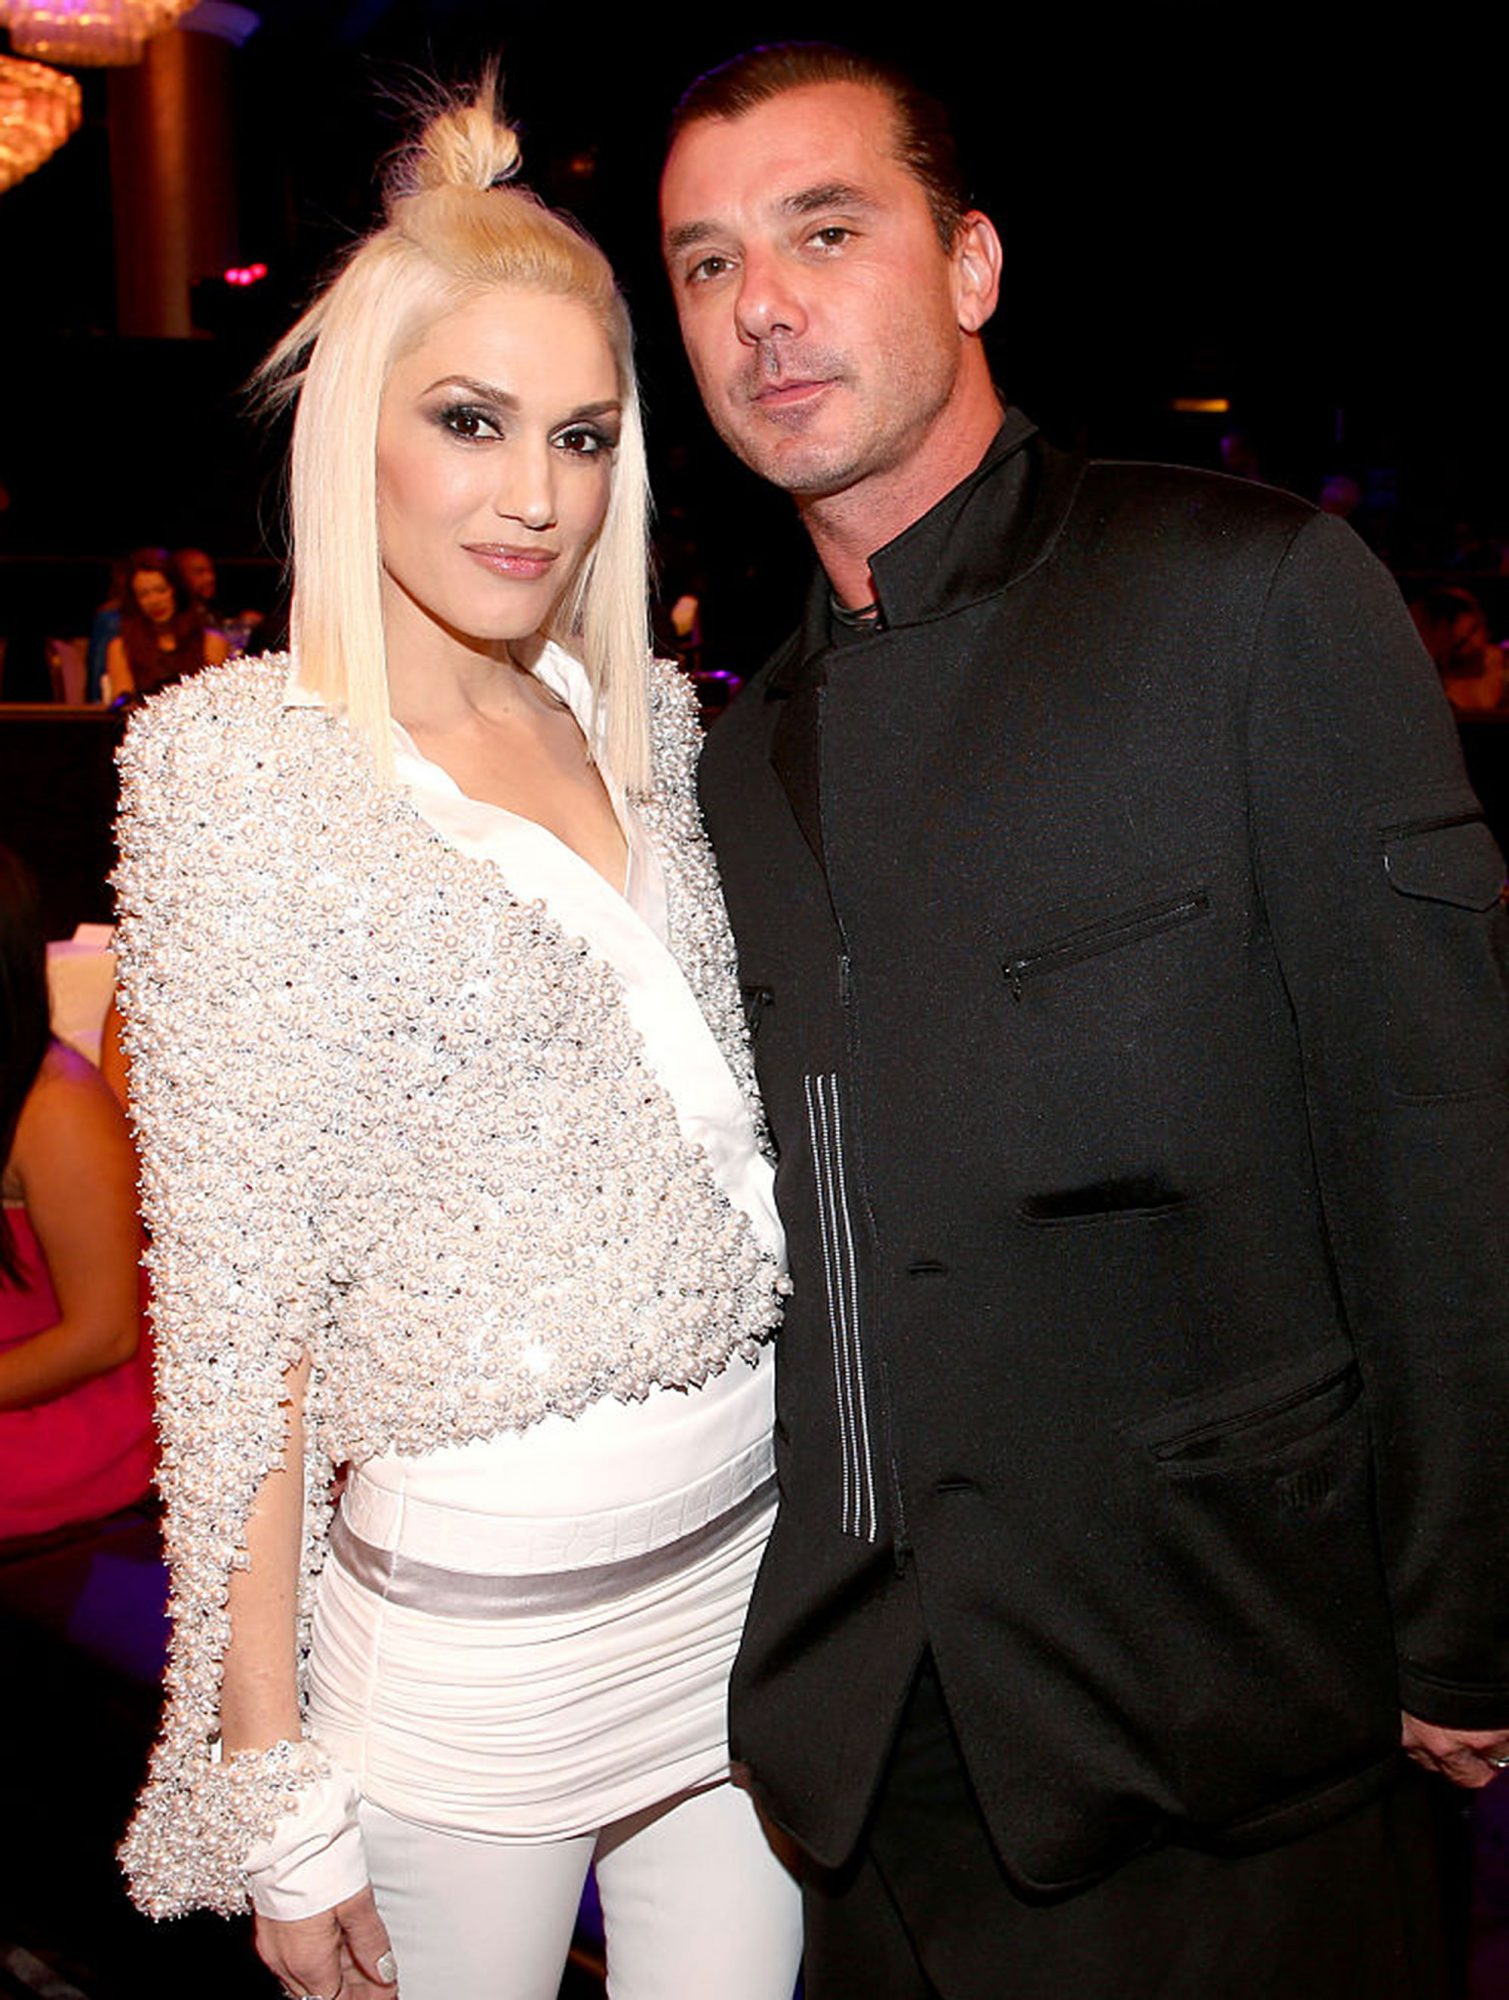 BEVERLY HILLS, CA - DECEMBER 18: Recording artists Gwen Stefani (L) and Gavin Rossdale attend the PEOPLE Magazine Awards at The Beverly Hilton Hotel on December 18, 2014 in Beverly Hills, California. (Photo by Chris Polk/PMA2014/Getty Images for dcp)